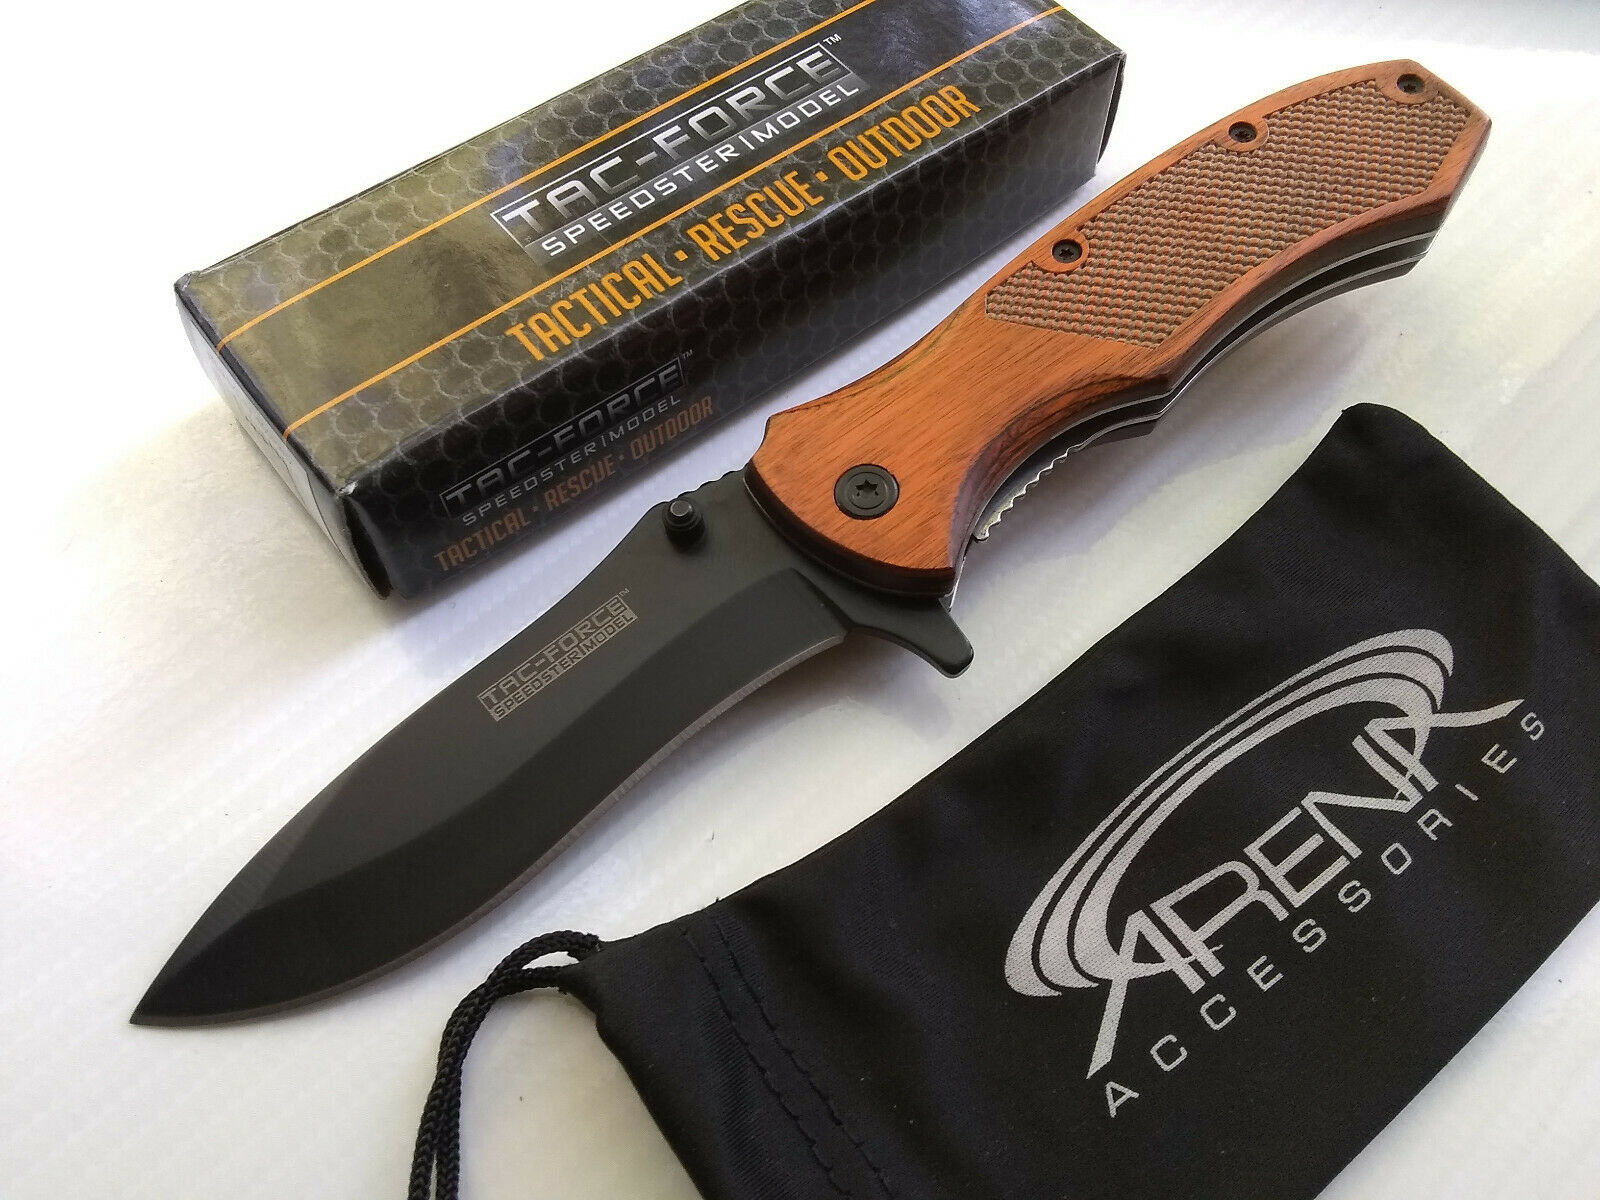 Tac-Force Red Brown Wood Handle Black Blade Spring Assisted Pocket Knife Hunting Legal EDC